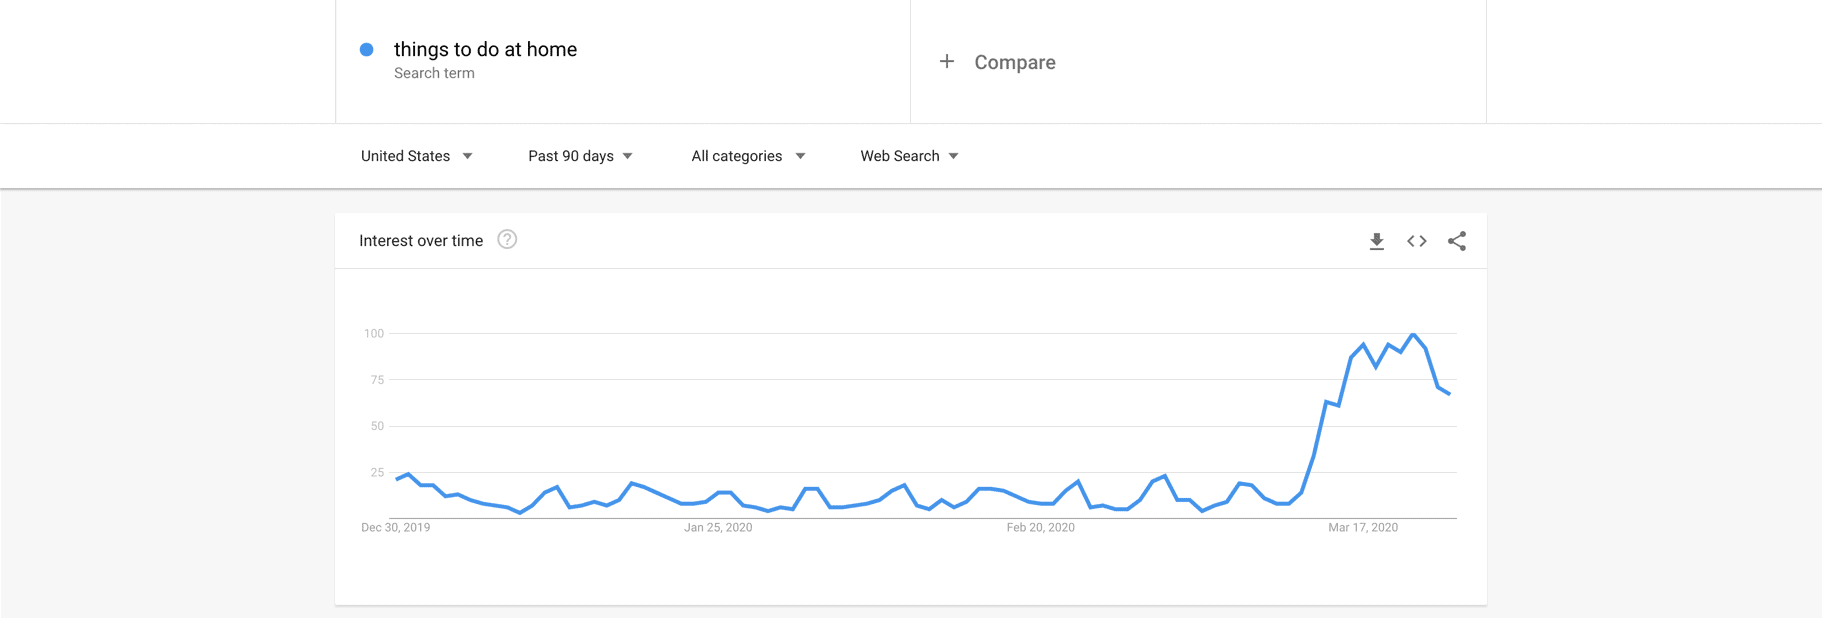 Google Trends showing things to do at home is trending